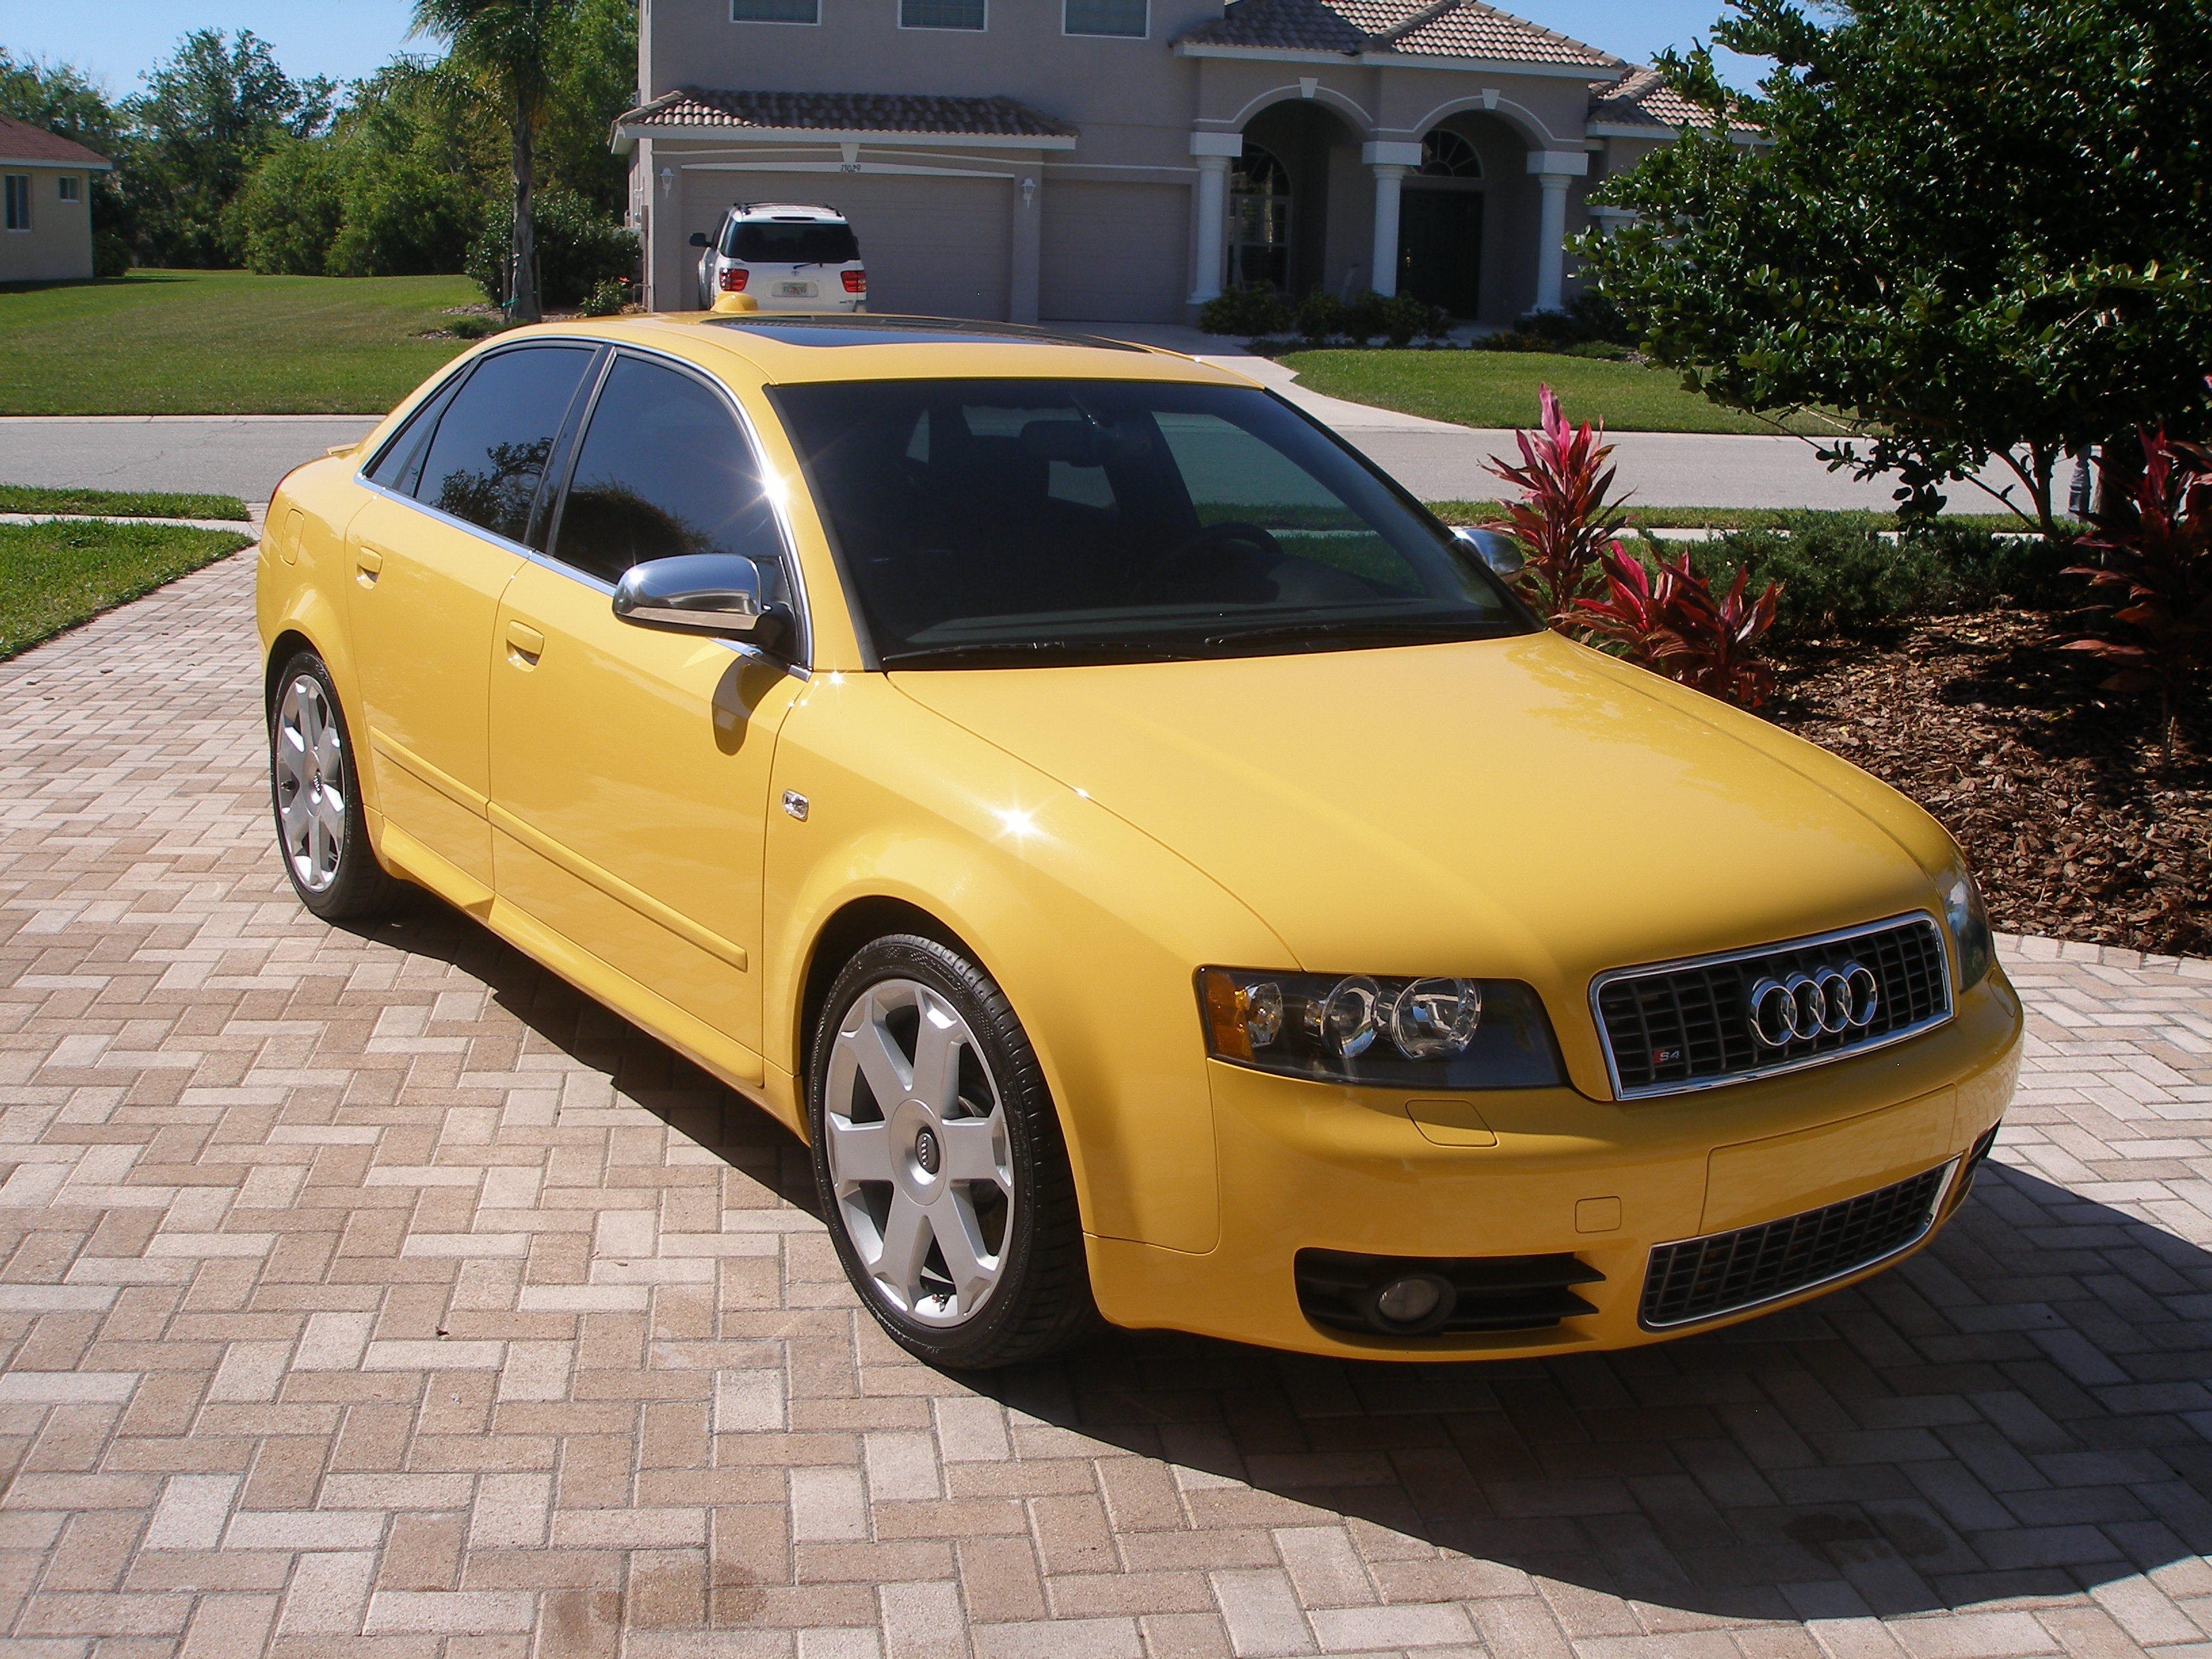 Audi S4 0 60 >> R8X66 2004 Audi S4 Specs, Photos, Modification Info at CarDomain